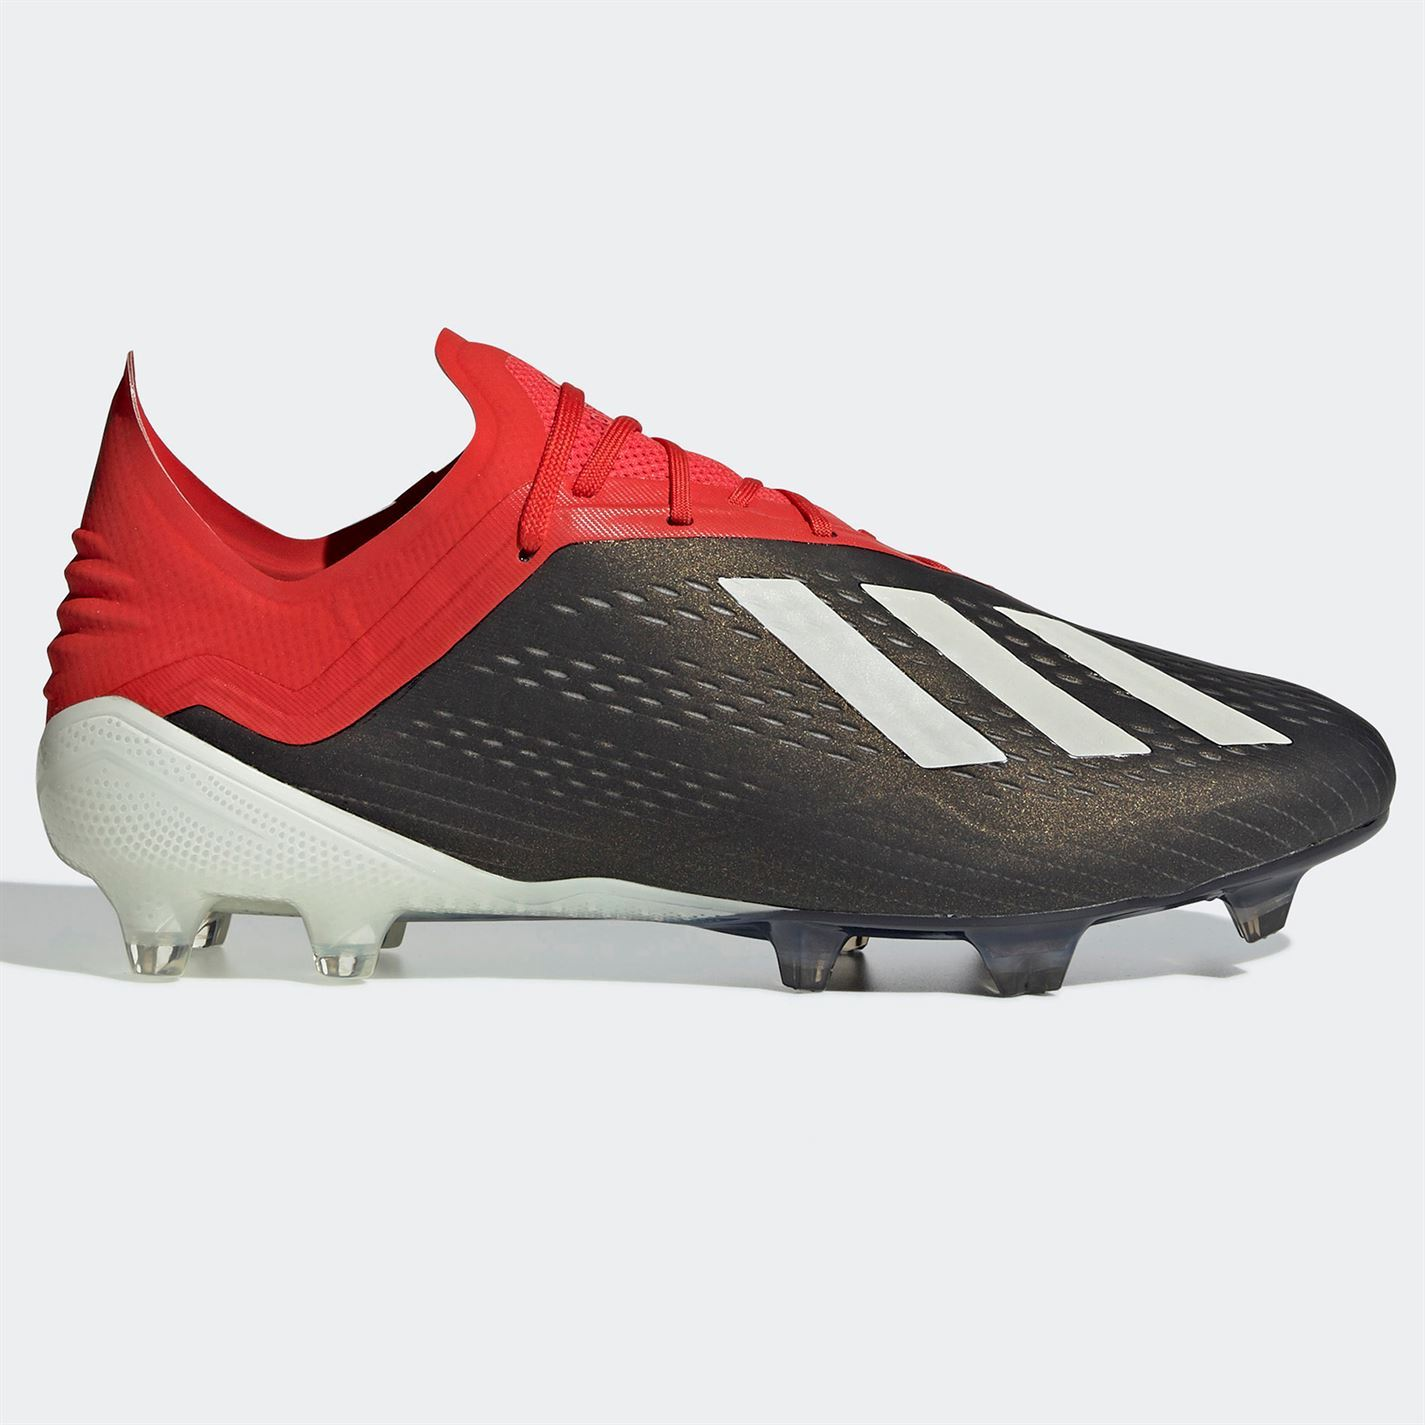 uk availability 79ad4 c2117 ... adidas X 18.1 FG Firm Ground Football Boots Mens Soccer Shoes Cleats